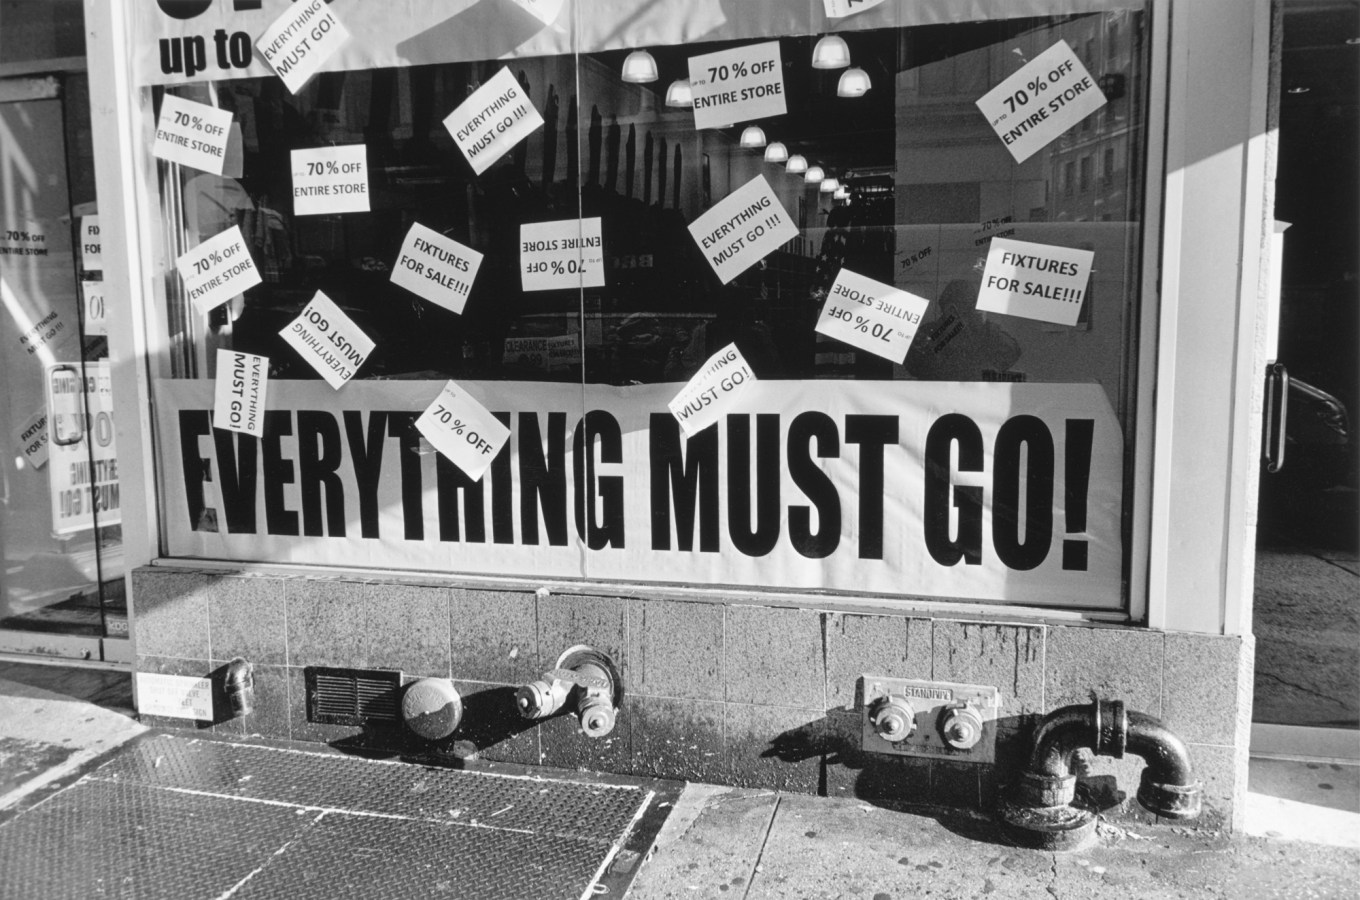 Black-and-white photograph of a storefront with all caps text everything must go!